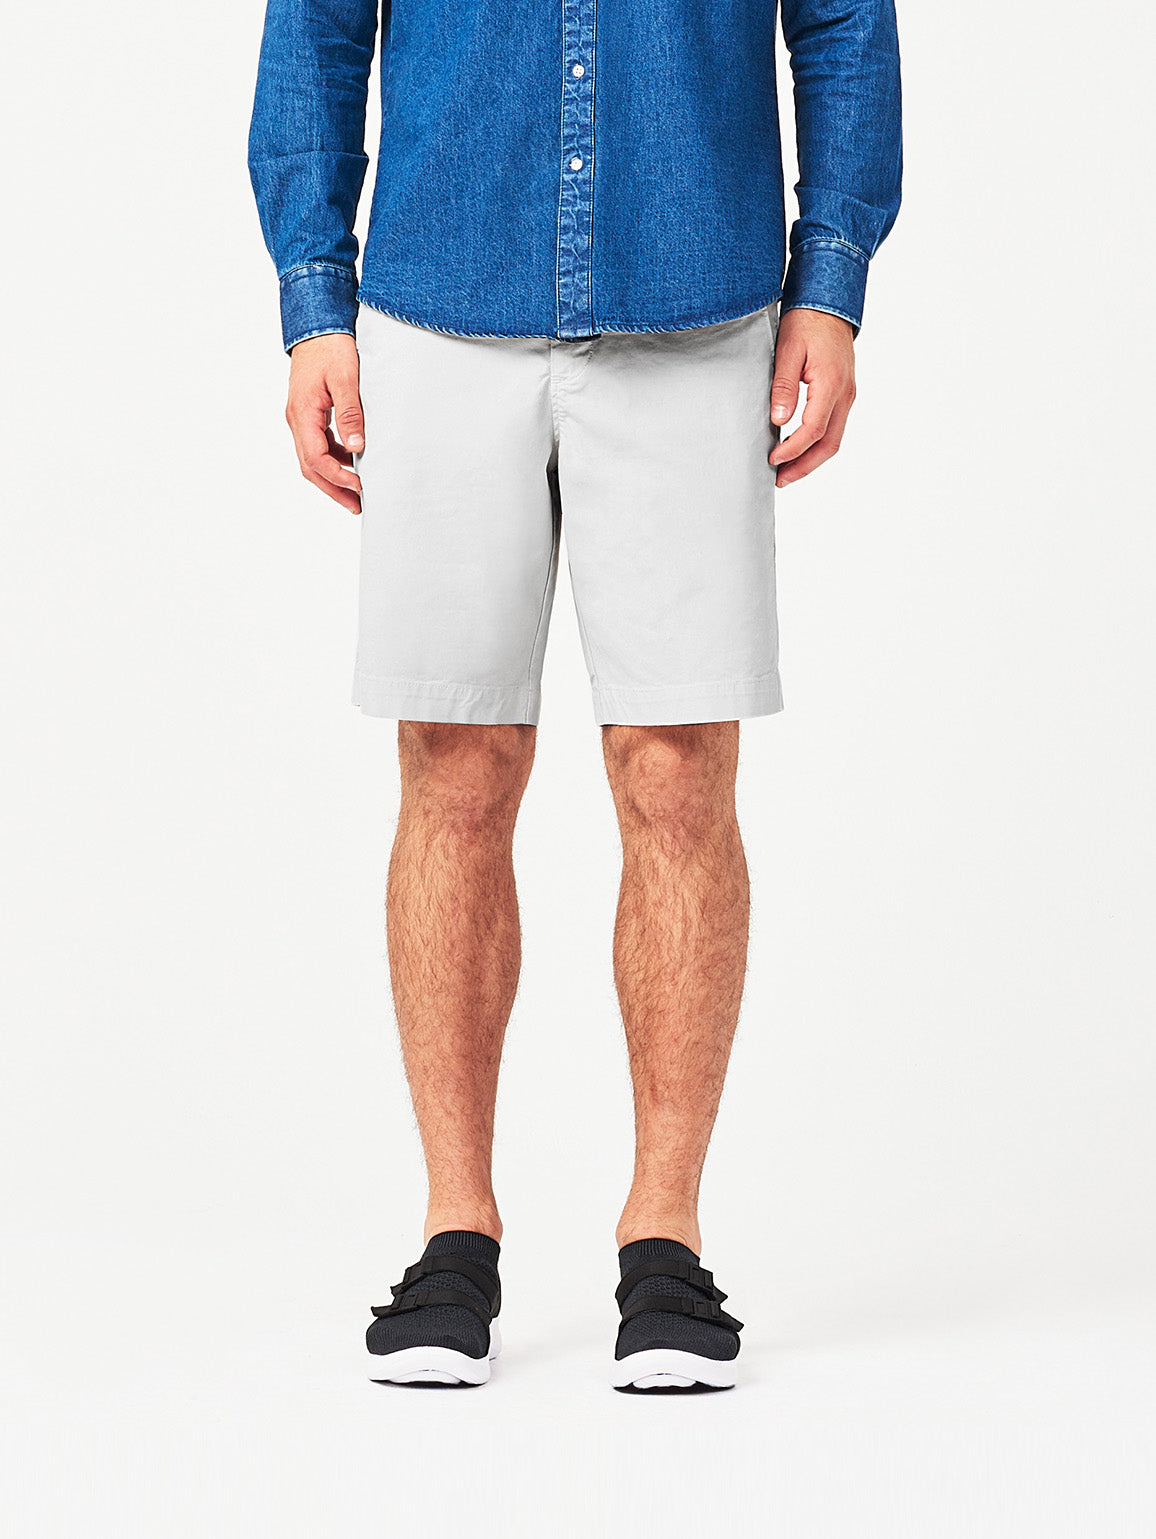 Jake Chino Short | Stucco DL 1961 Denim